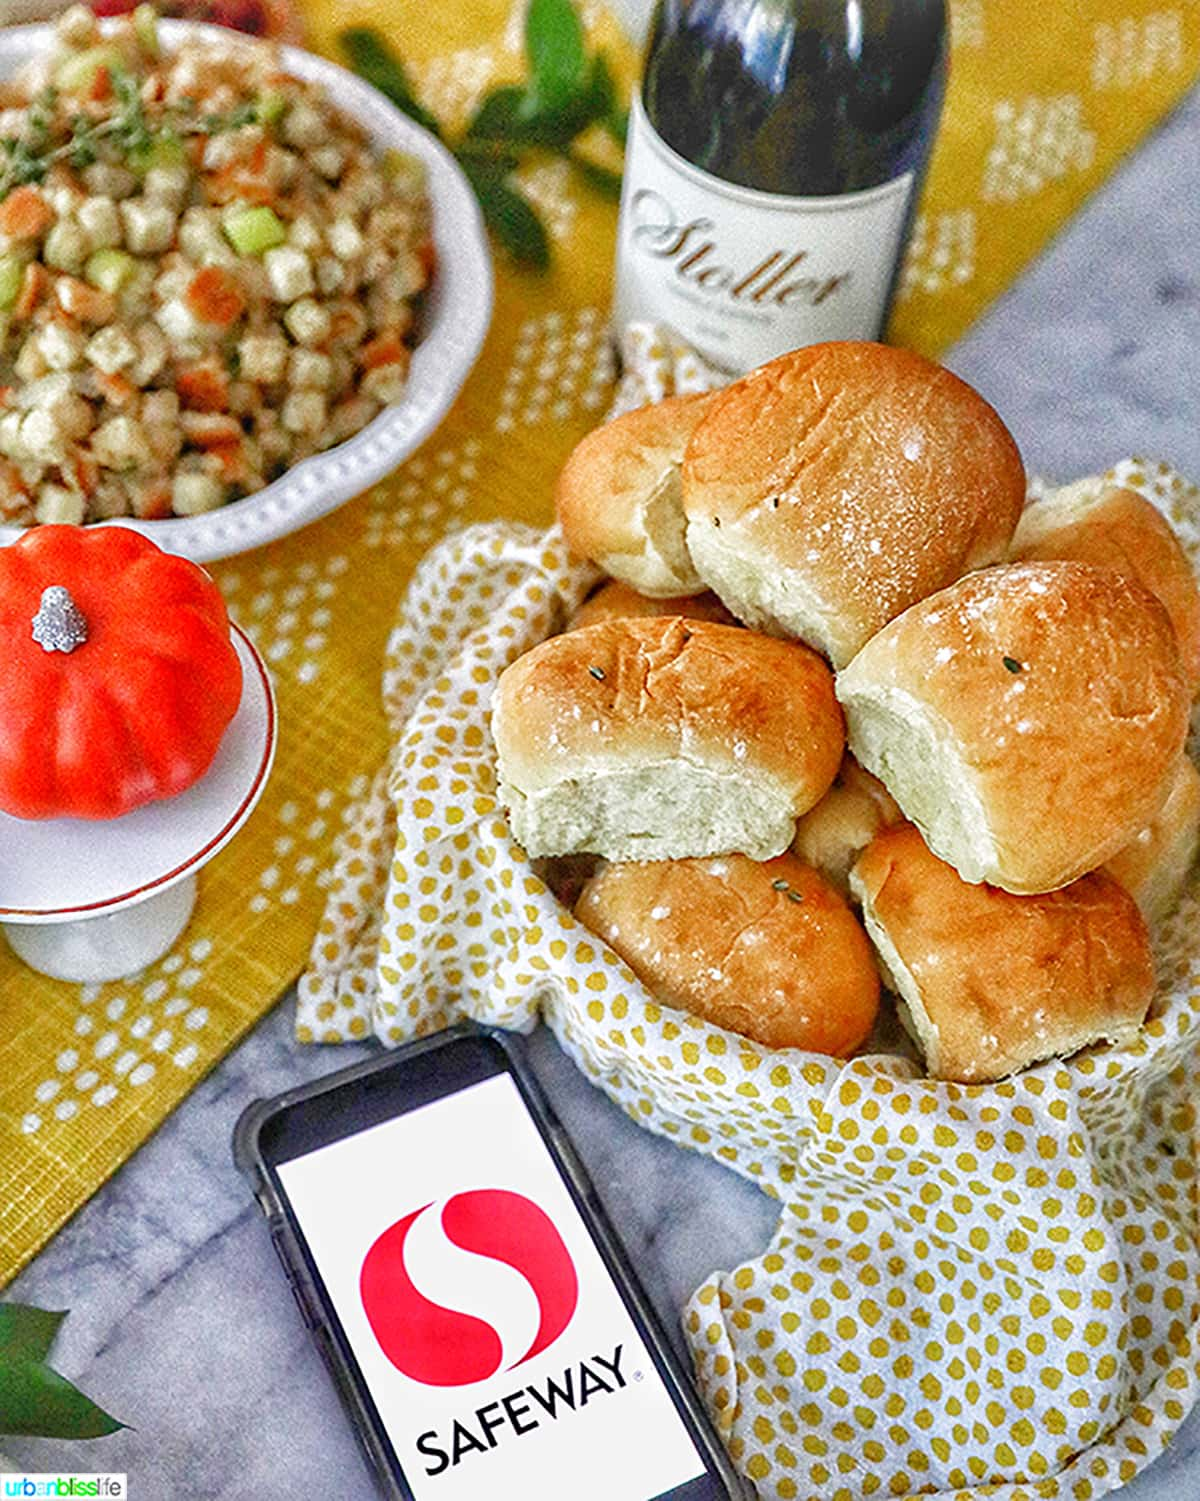 dinner rolls in a basket with safeway logo on phone